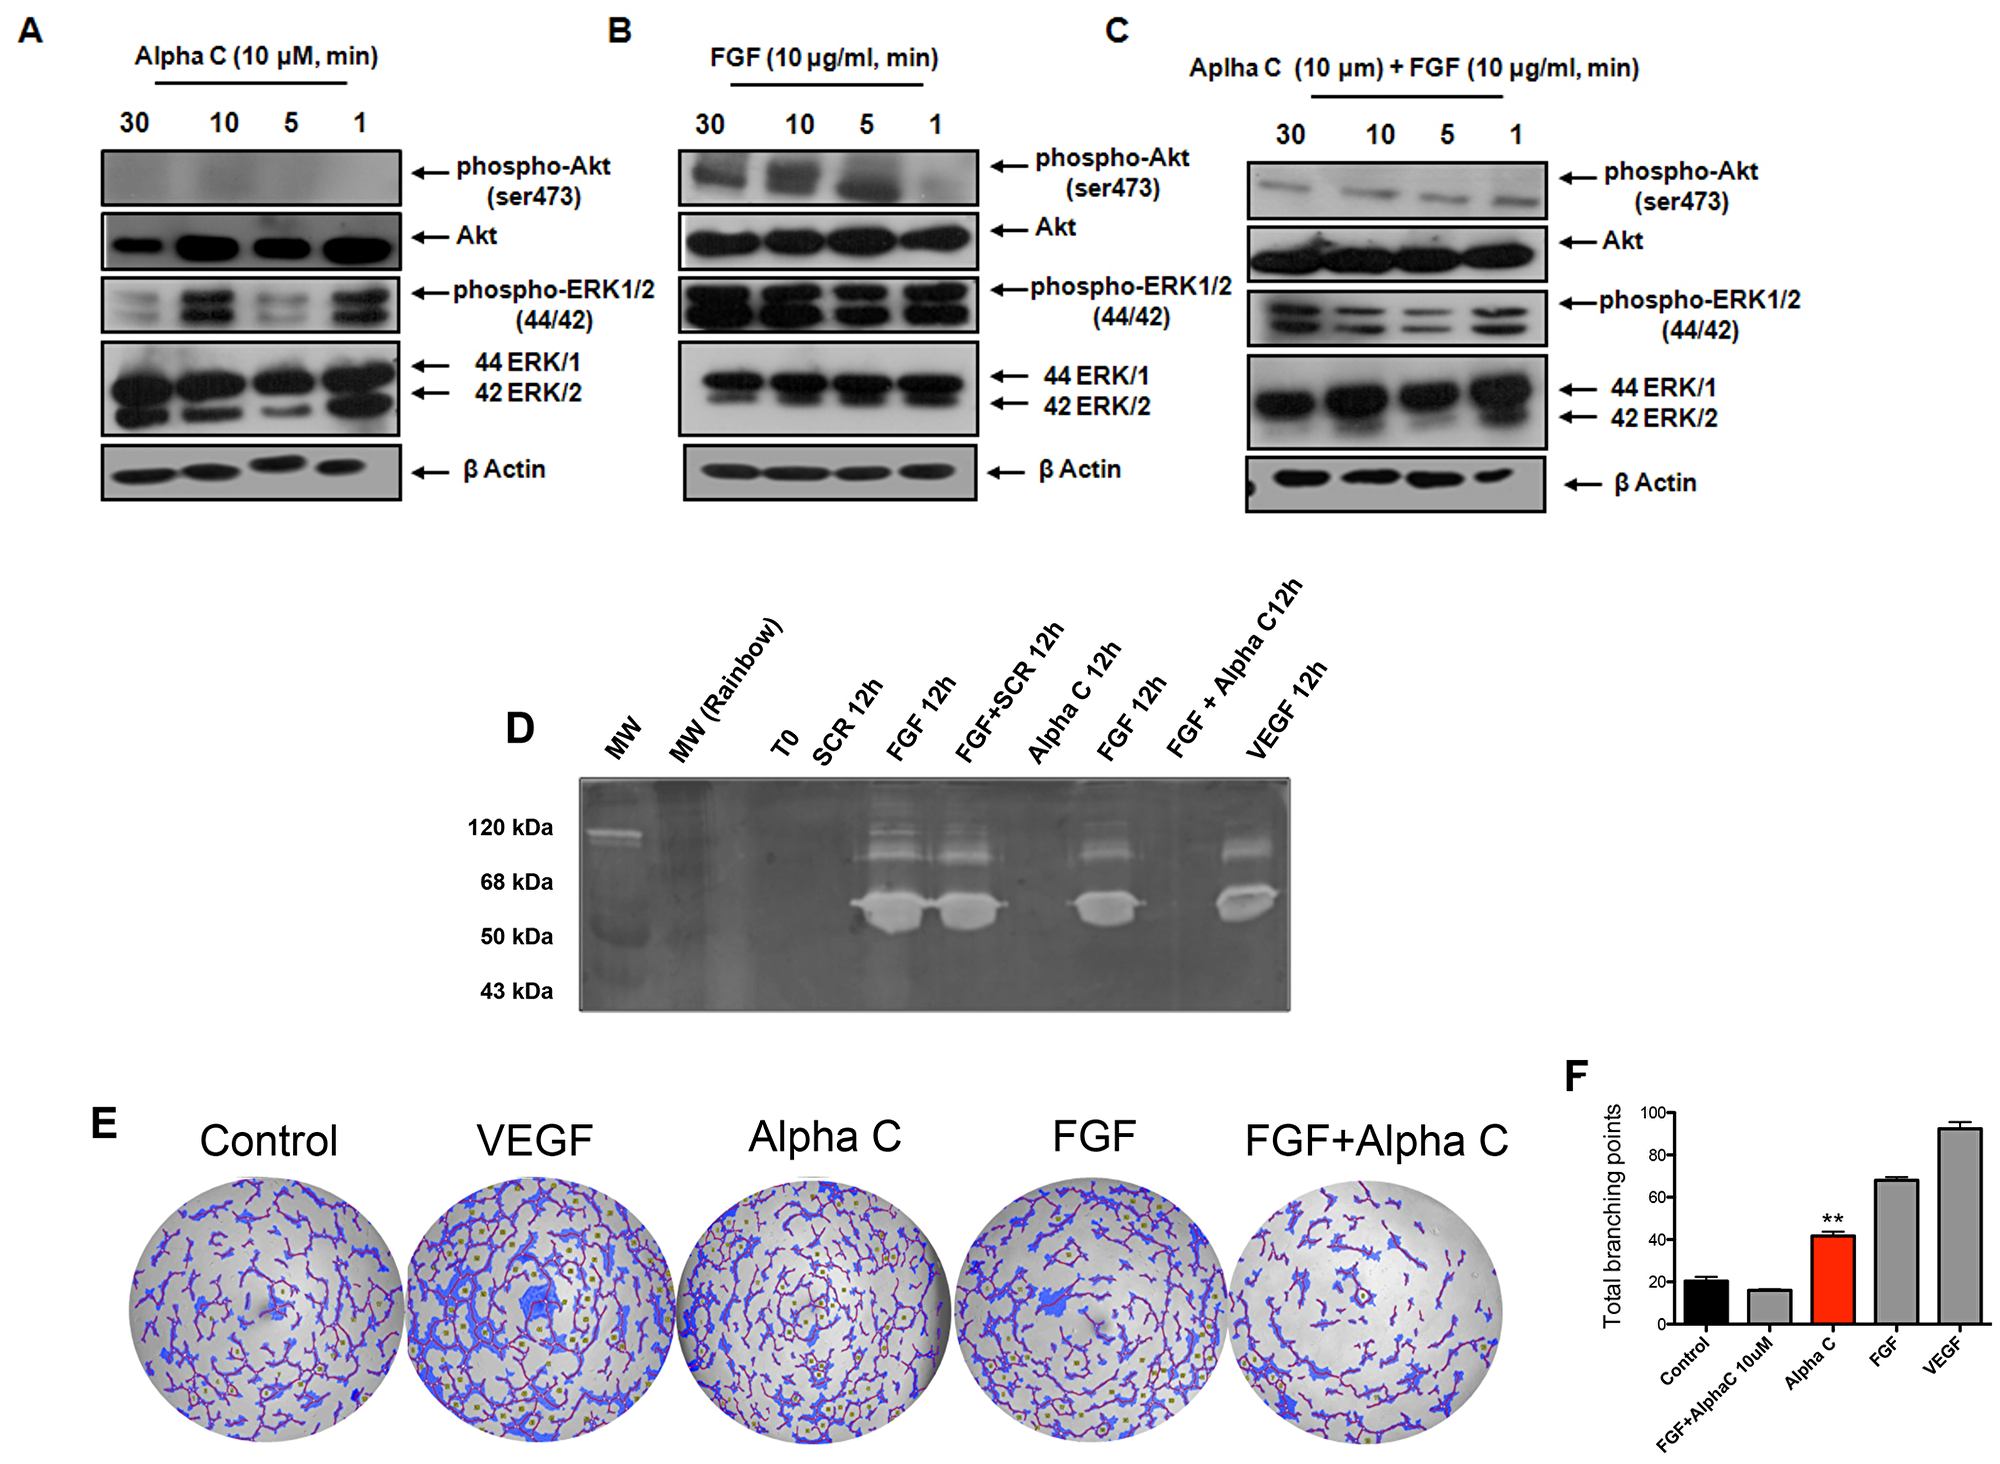 Alphastatin-C blocks ERK and Akt activation by FGF and inhibits FGF-triggered MMPs secretion and tubulogenic activity.